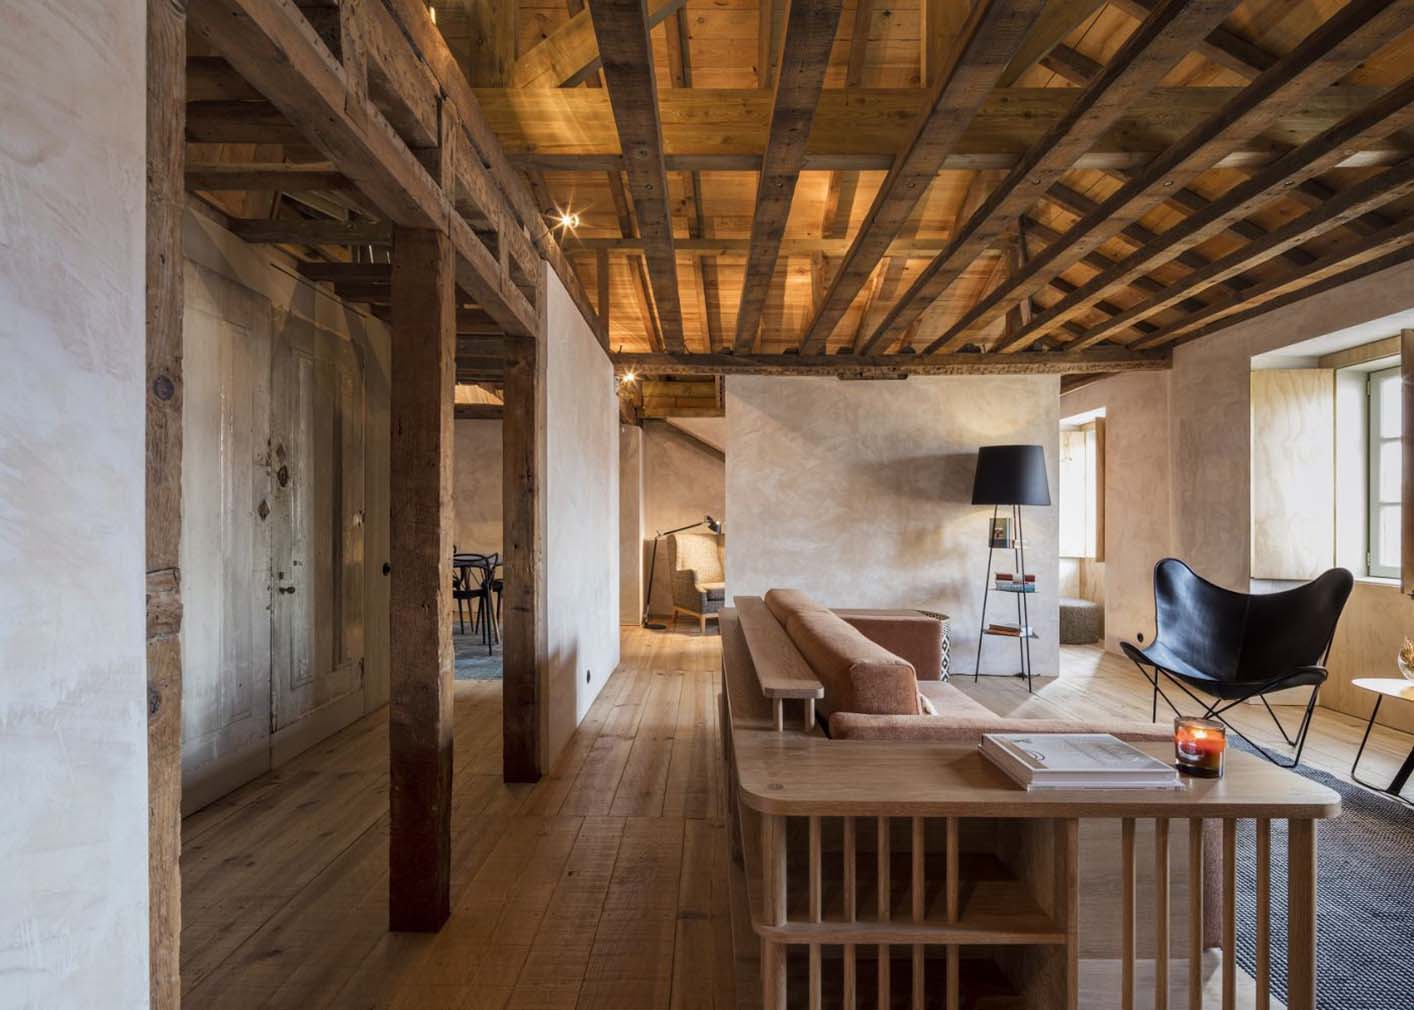 An 18th-century apartment renovated by CASCA